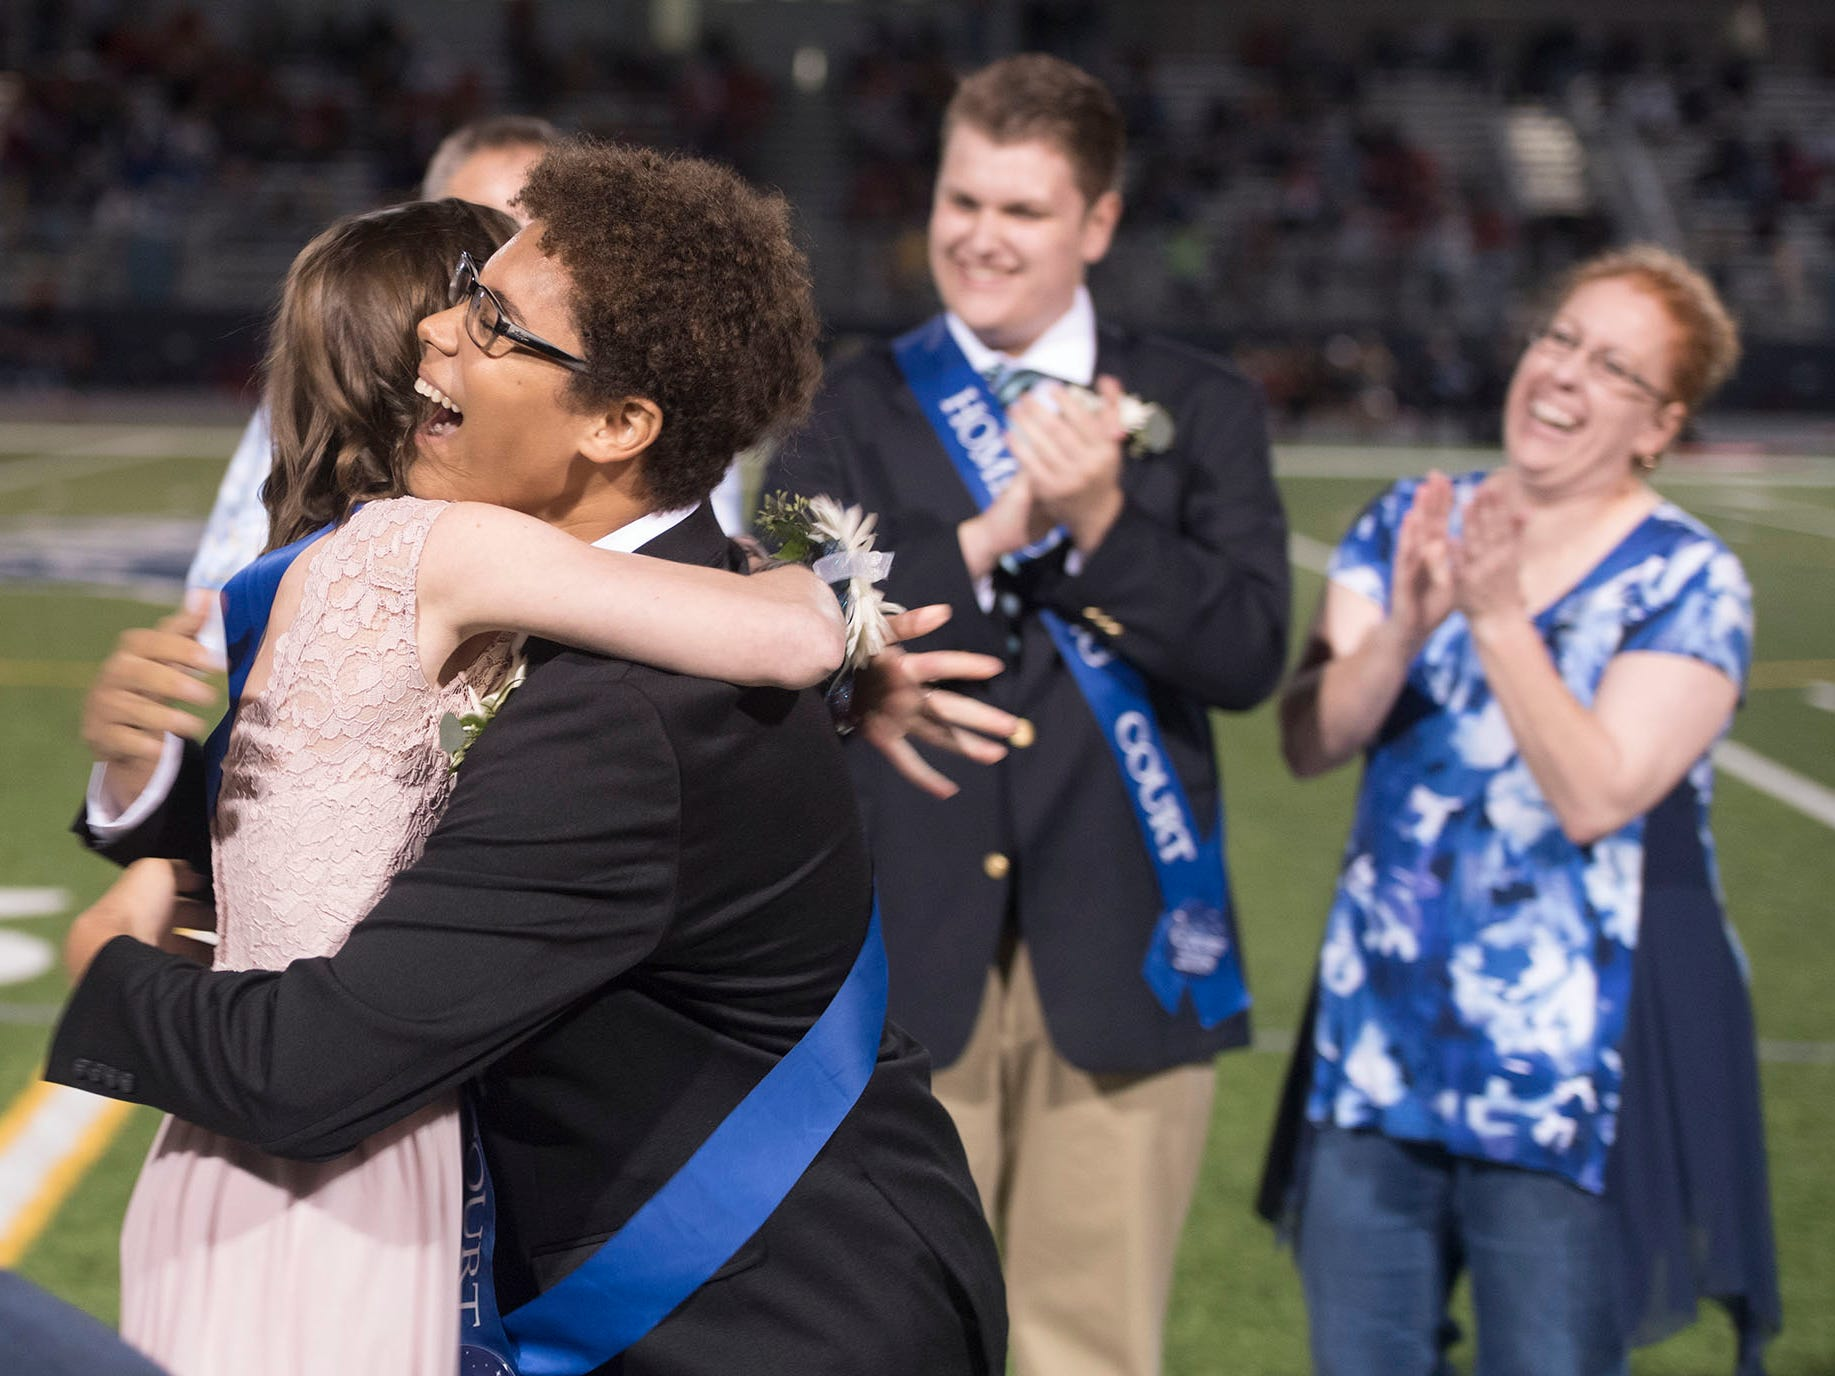 Keith Elijah Thomas and Elise Monheim react to be awarded homecoming king and queen. Chambersburg Trojans are 5-1 after a homecoming victory over Cumberland Valley 28-14 in PIAA football on Friday, Sept. 28, 2018.